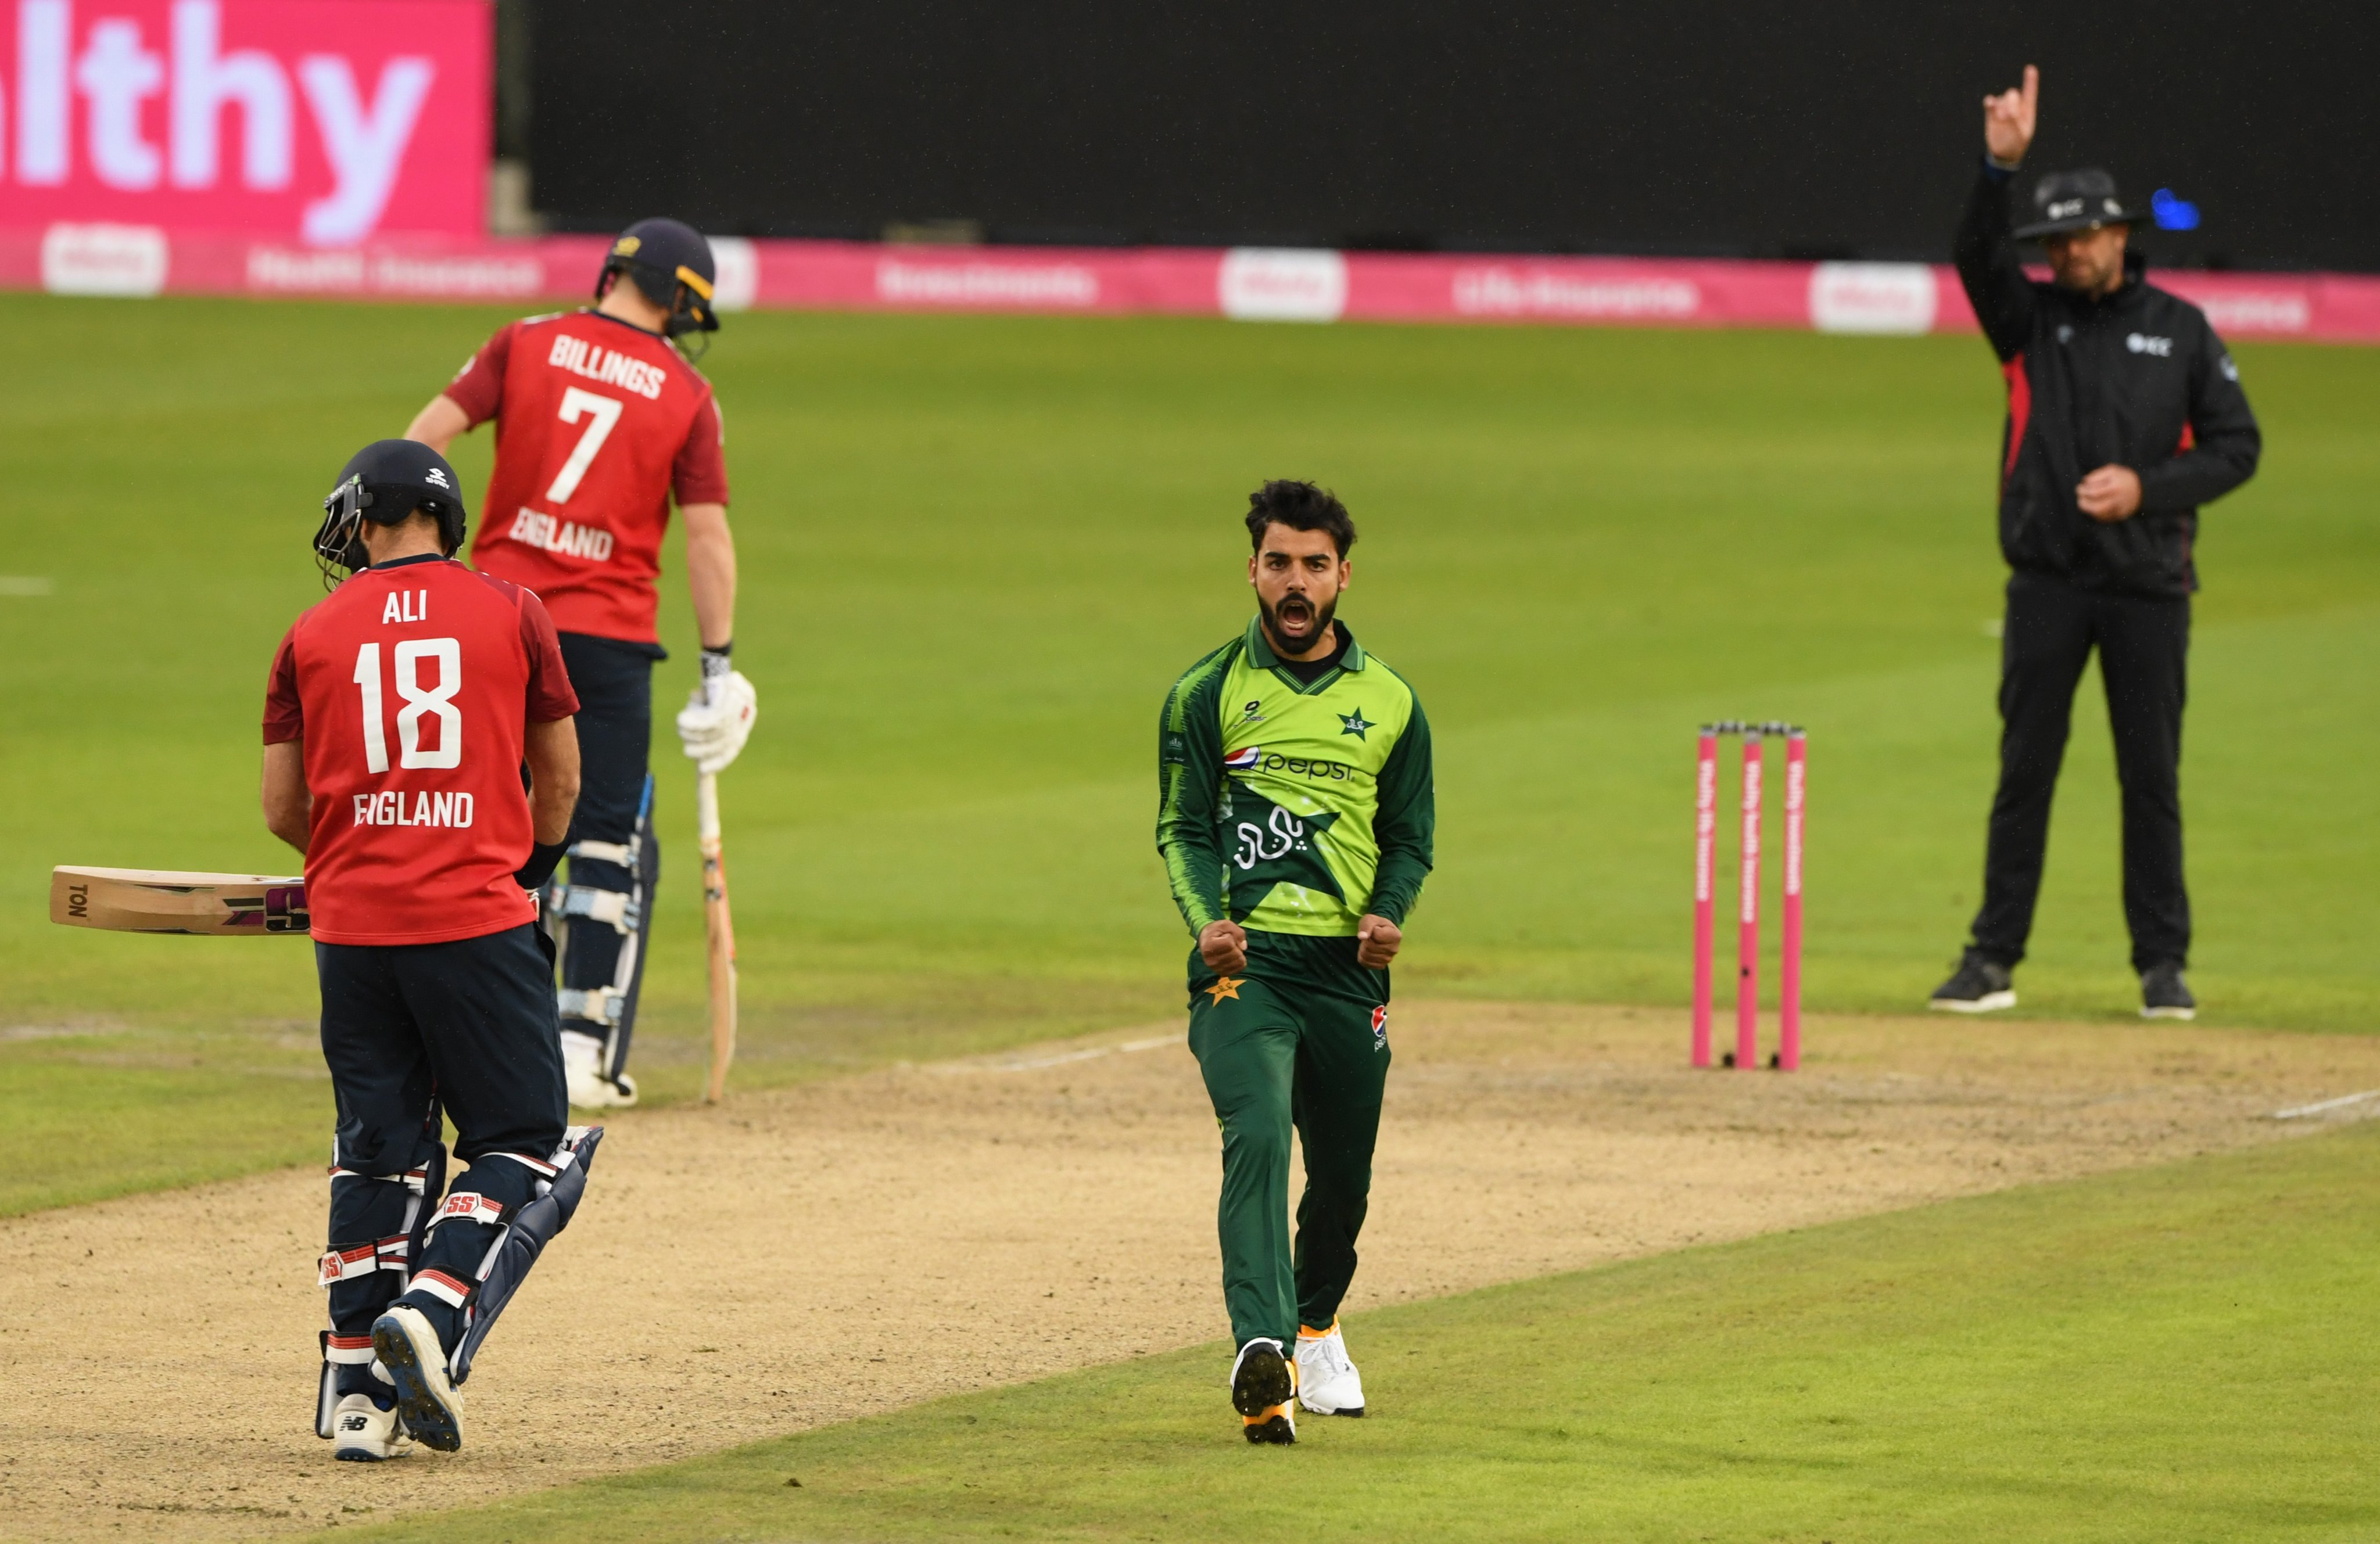 Shadab Khan- England vs Pakistan 1st T20I